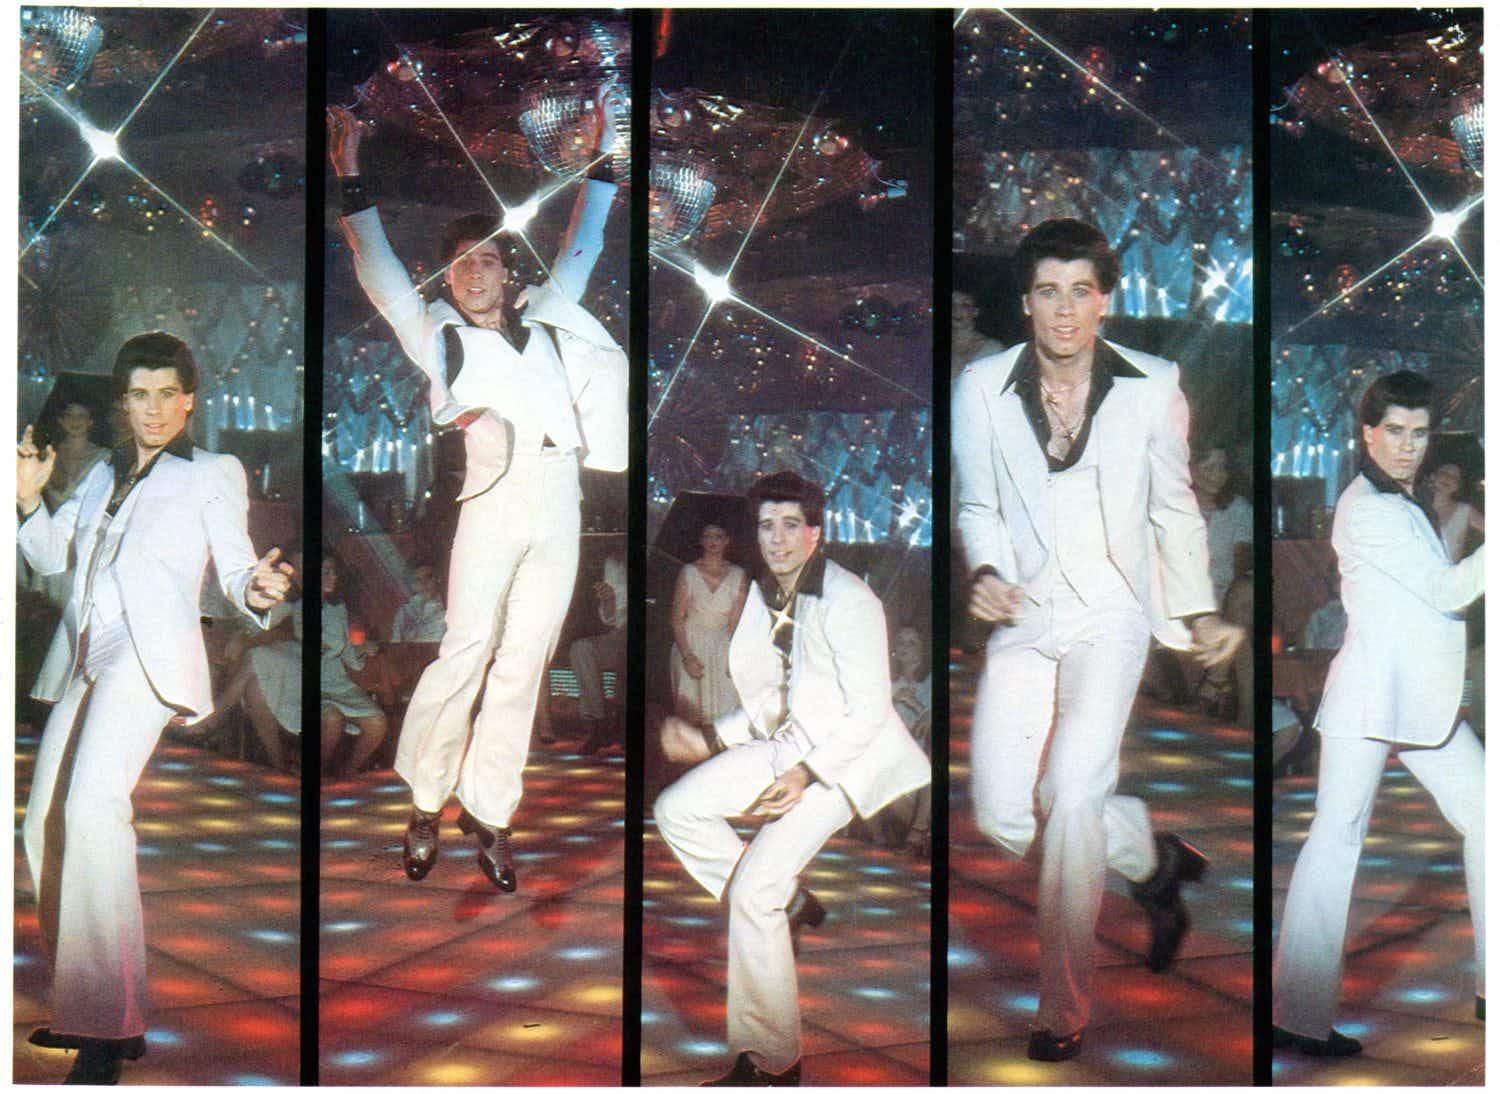 It's been stayin' alive since the 1970s, and now the Saturday Night Fever dance floor is up for sale